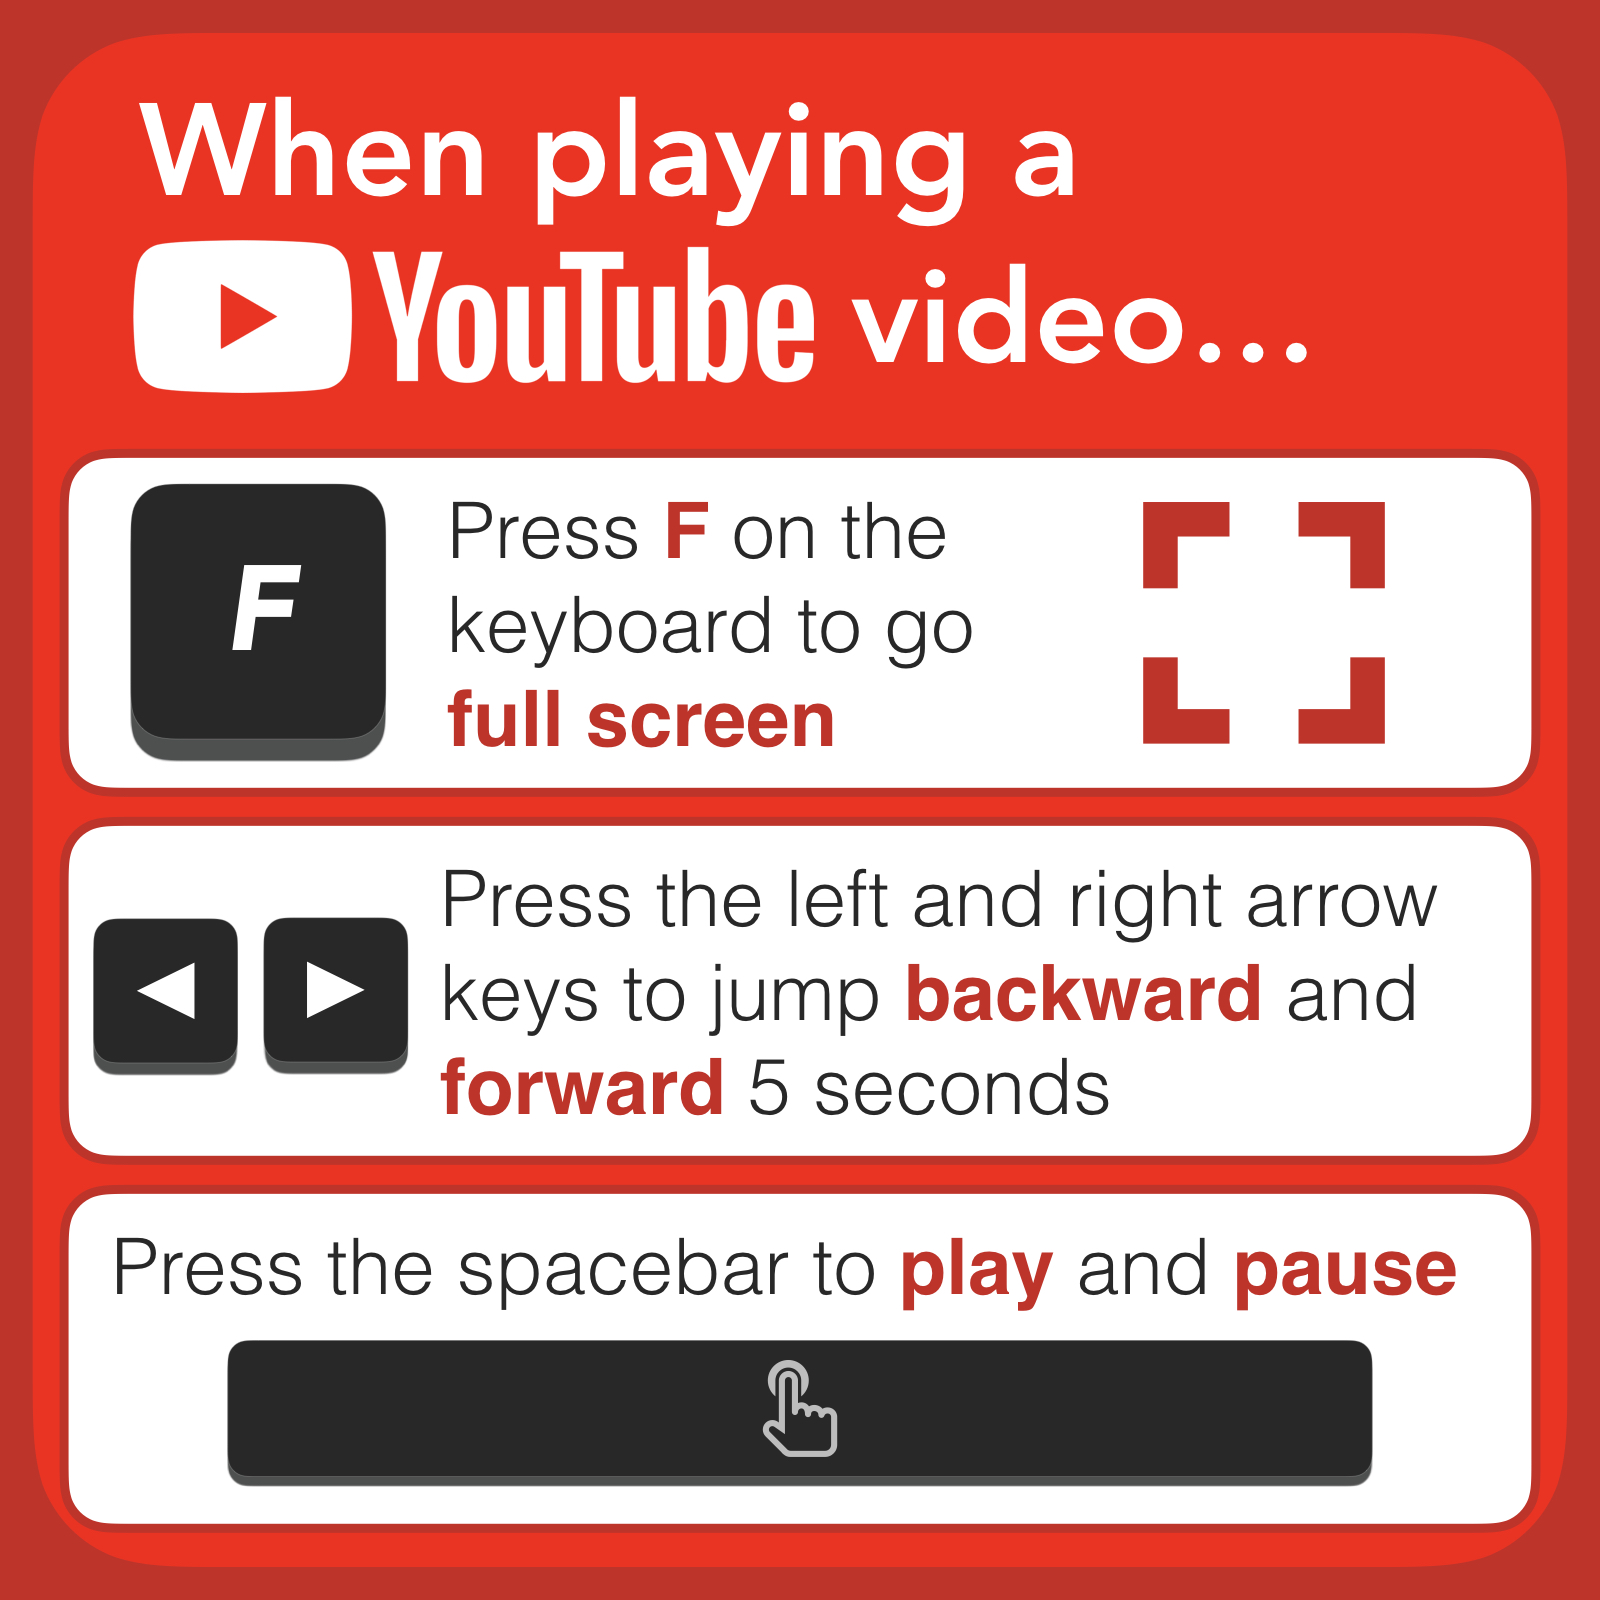 YouTube has keyboard shortcuts to control playback. Pressing the F key while viewing a YouTube video makes the video go full screen. You can press F again to exit full screen. The spacebar pauses and resumes playback. The right and left arrow keys jump the video forward or backward five seconds. If the keyboard shortcuts are not working, click inside the the YouTube player and try again.   Bonus Pointer:  While paused, you can press the period key [.] to advance one frame. Pressing the comma key [,] goes back one frame.